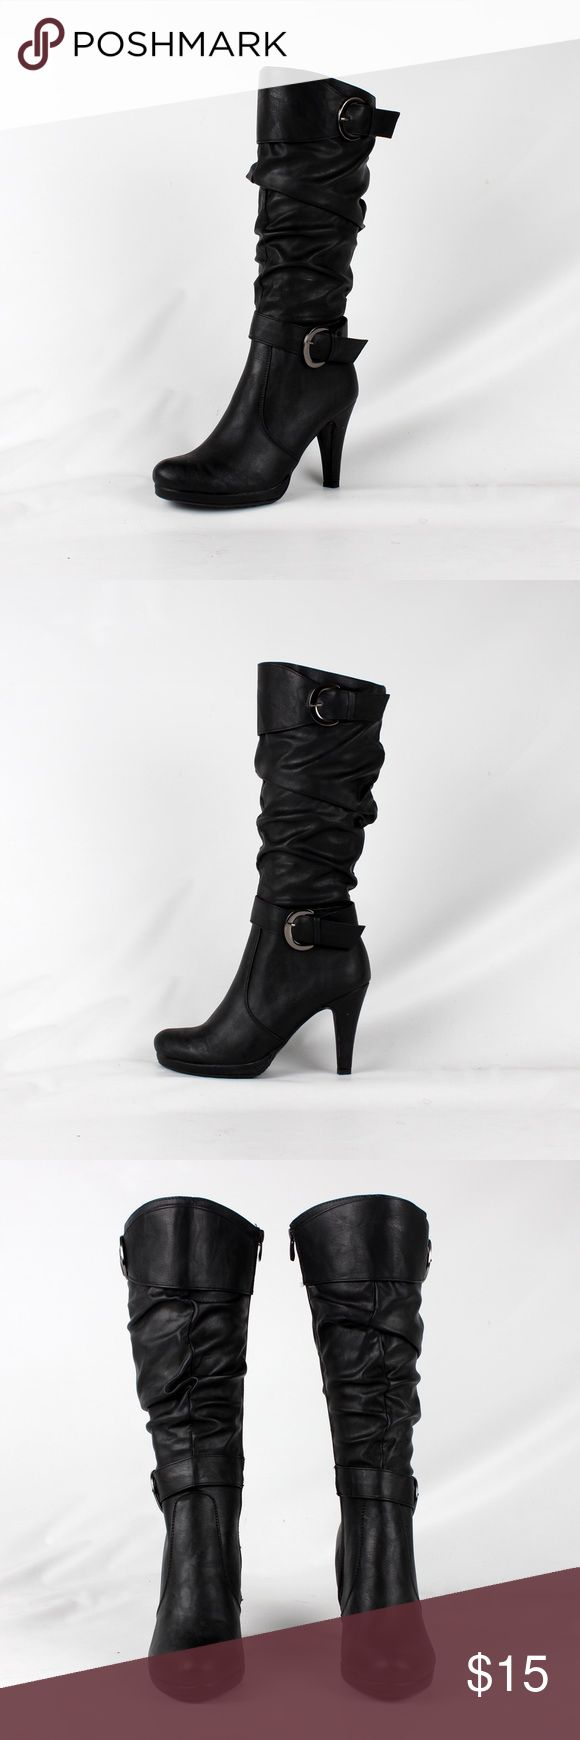 Faux leather strap heel boot (Lotus-28 Black) Shaft 12 1/2in heel height 4in.                                      ¥ my boutique ¥                                                                                                                        😍All items brand new 😢No price negotiation please ✌🏻️Bundle for discounts 😬No trades & PayPal 😊Please feel free to ask any questions Shoes Heeled Boots